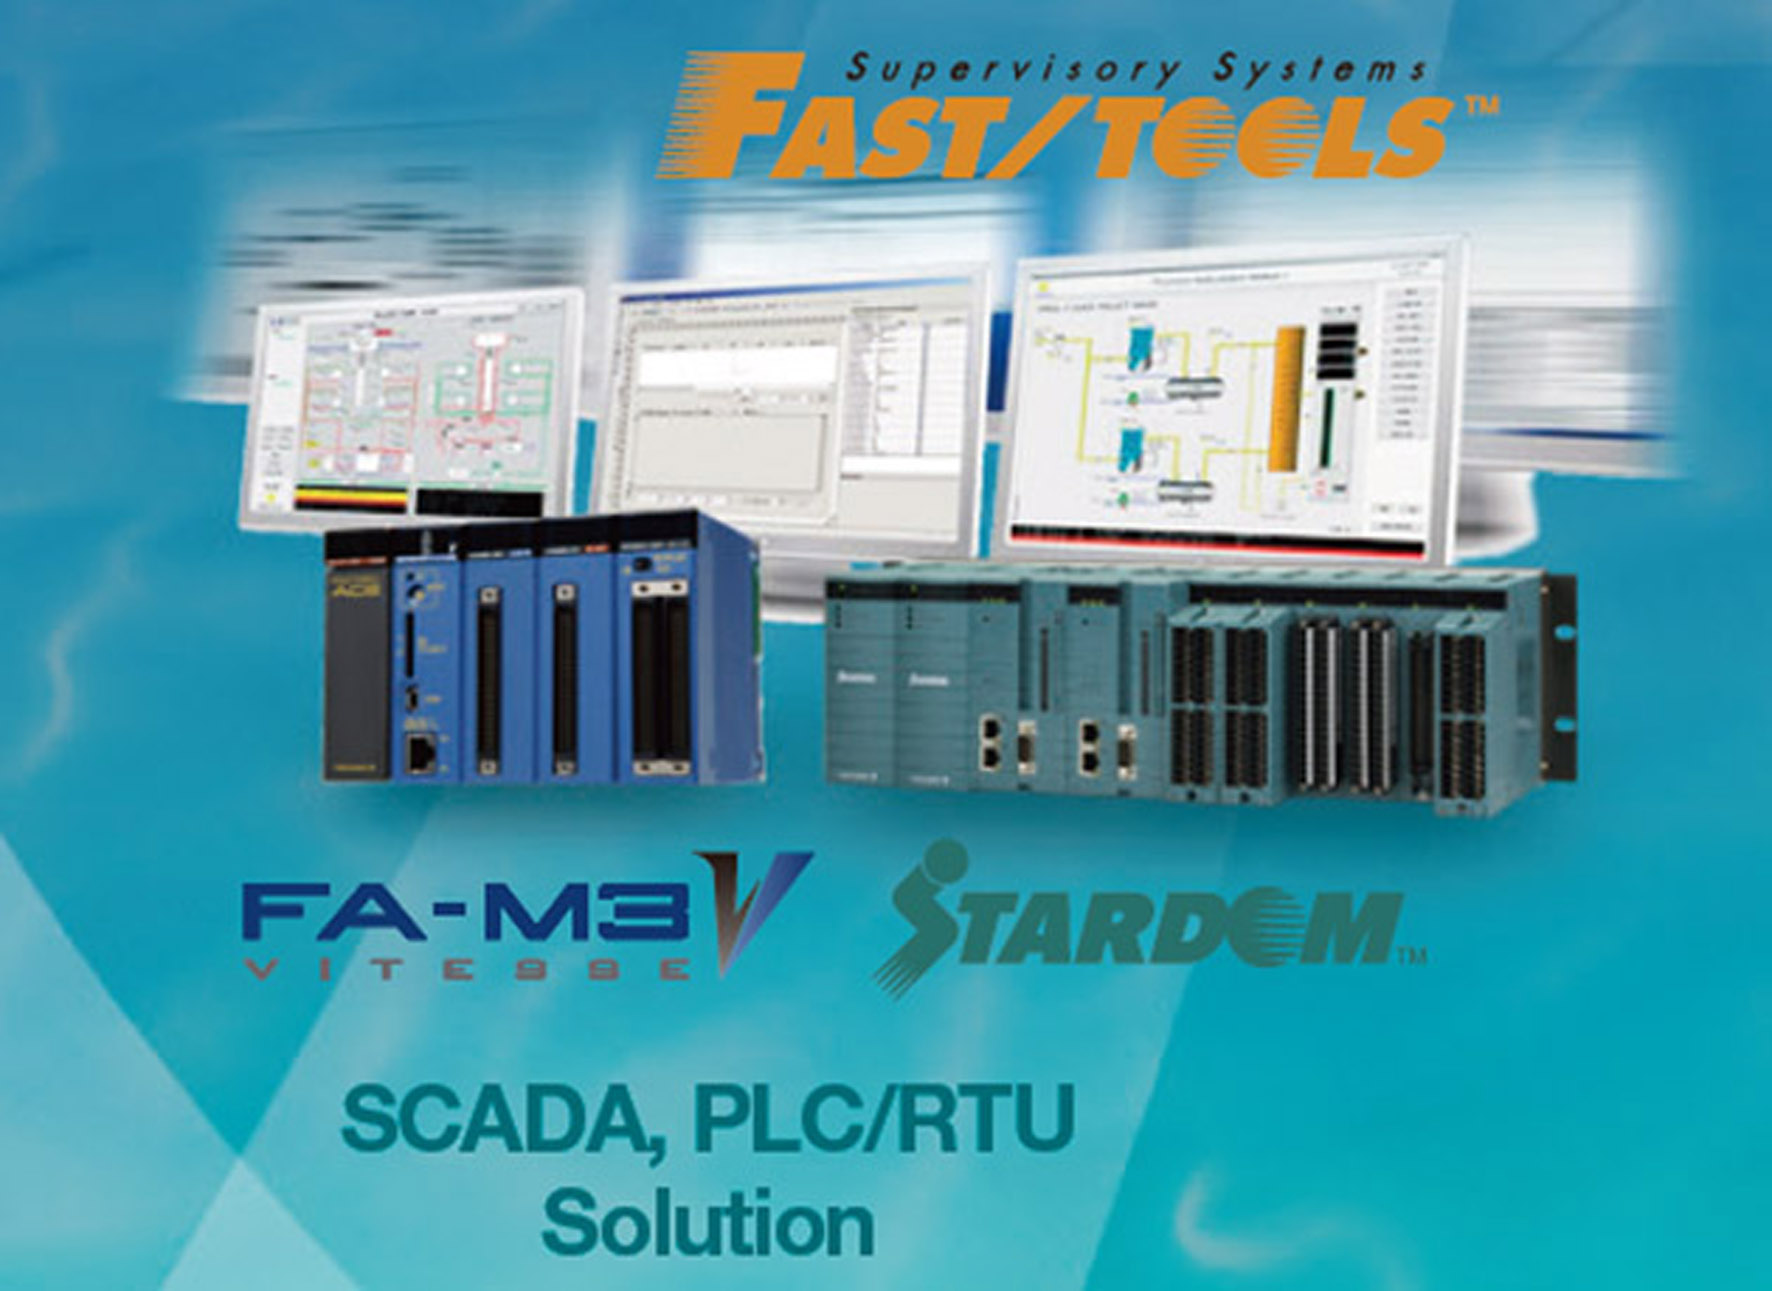 SCADA, PLC/RTU Solution